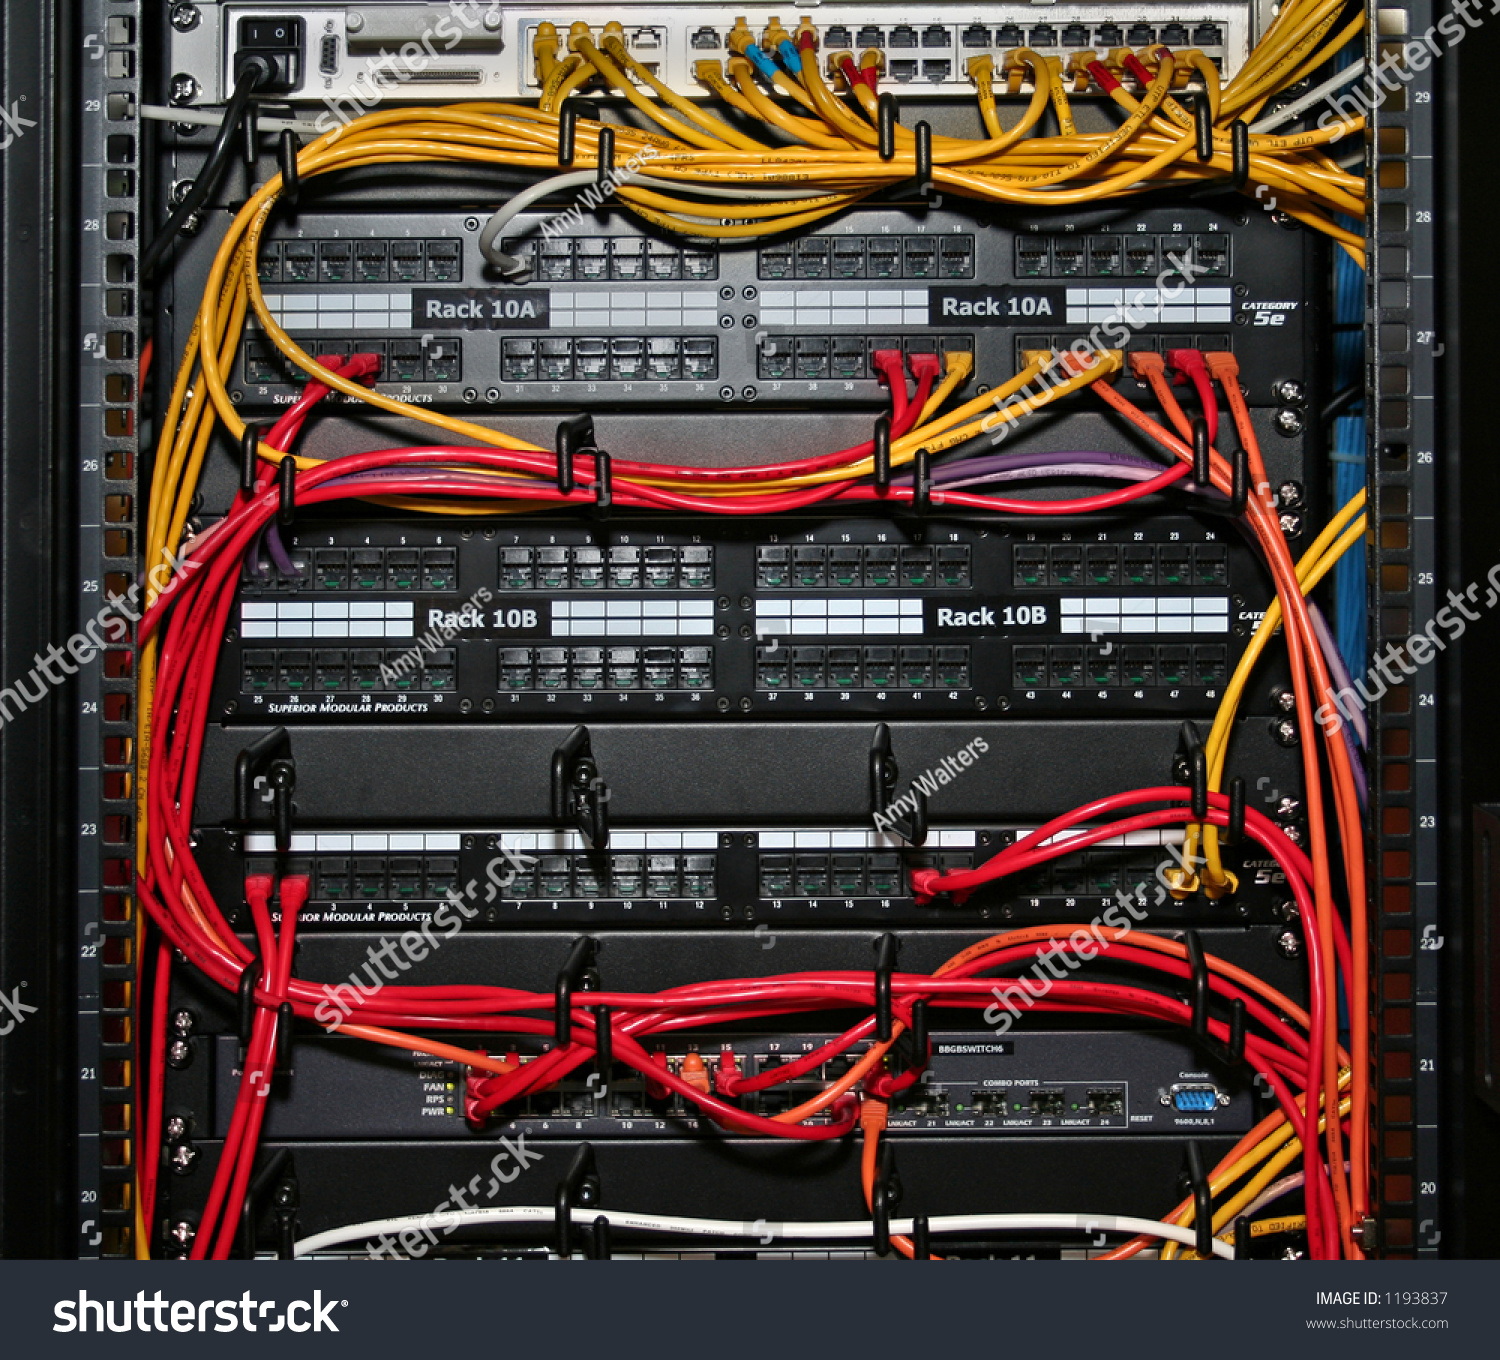 hight resolution of network cables plugged into patch panels and an ethernet switch in a rack